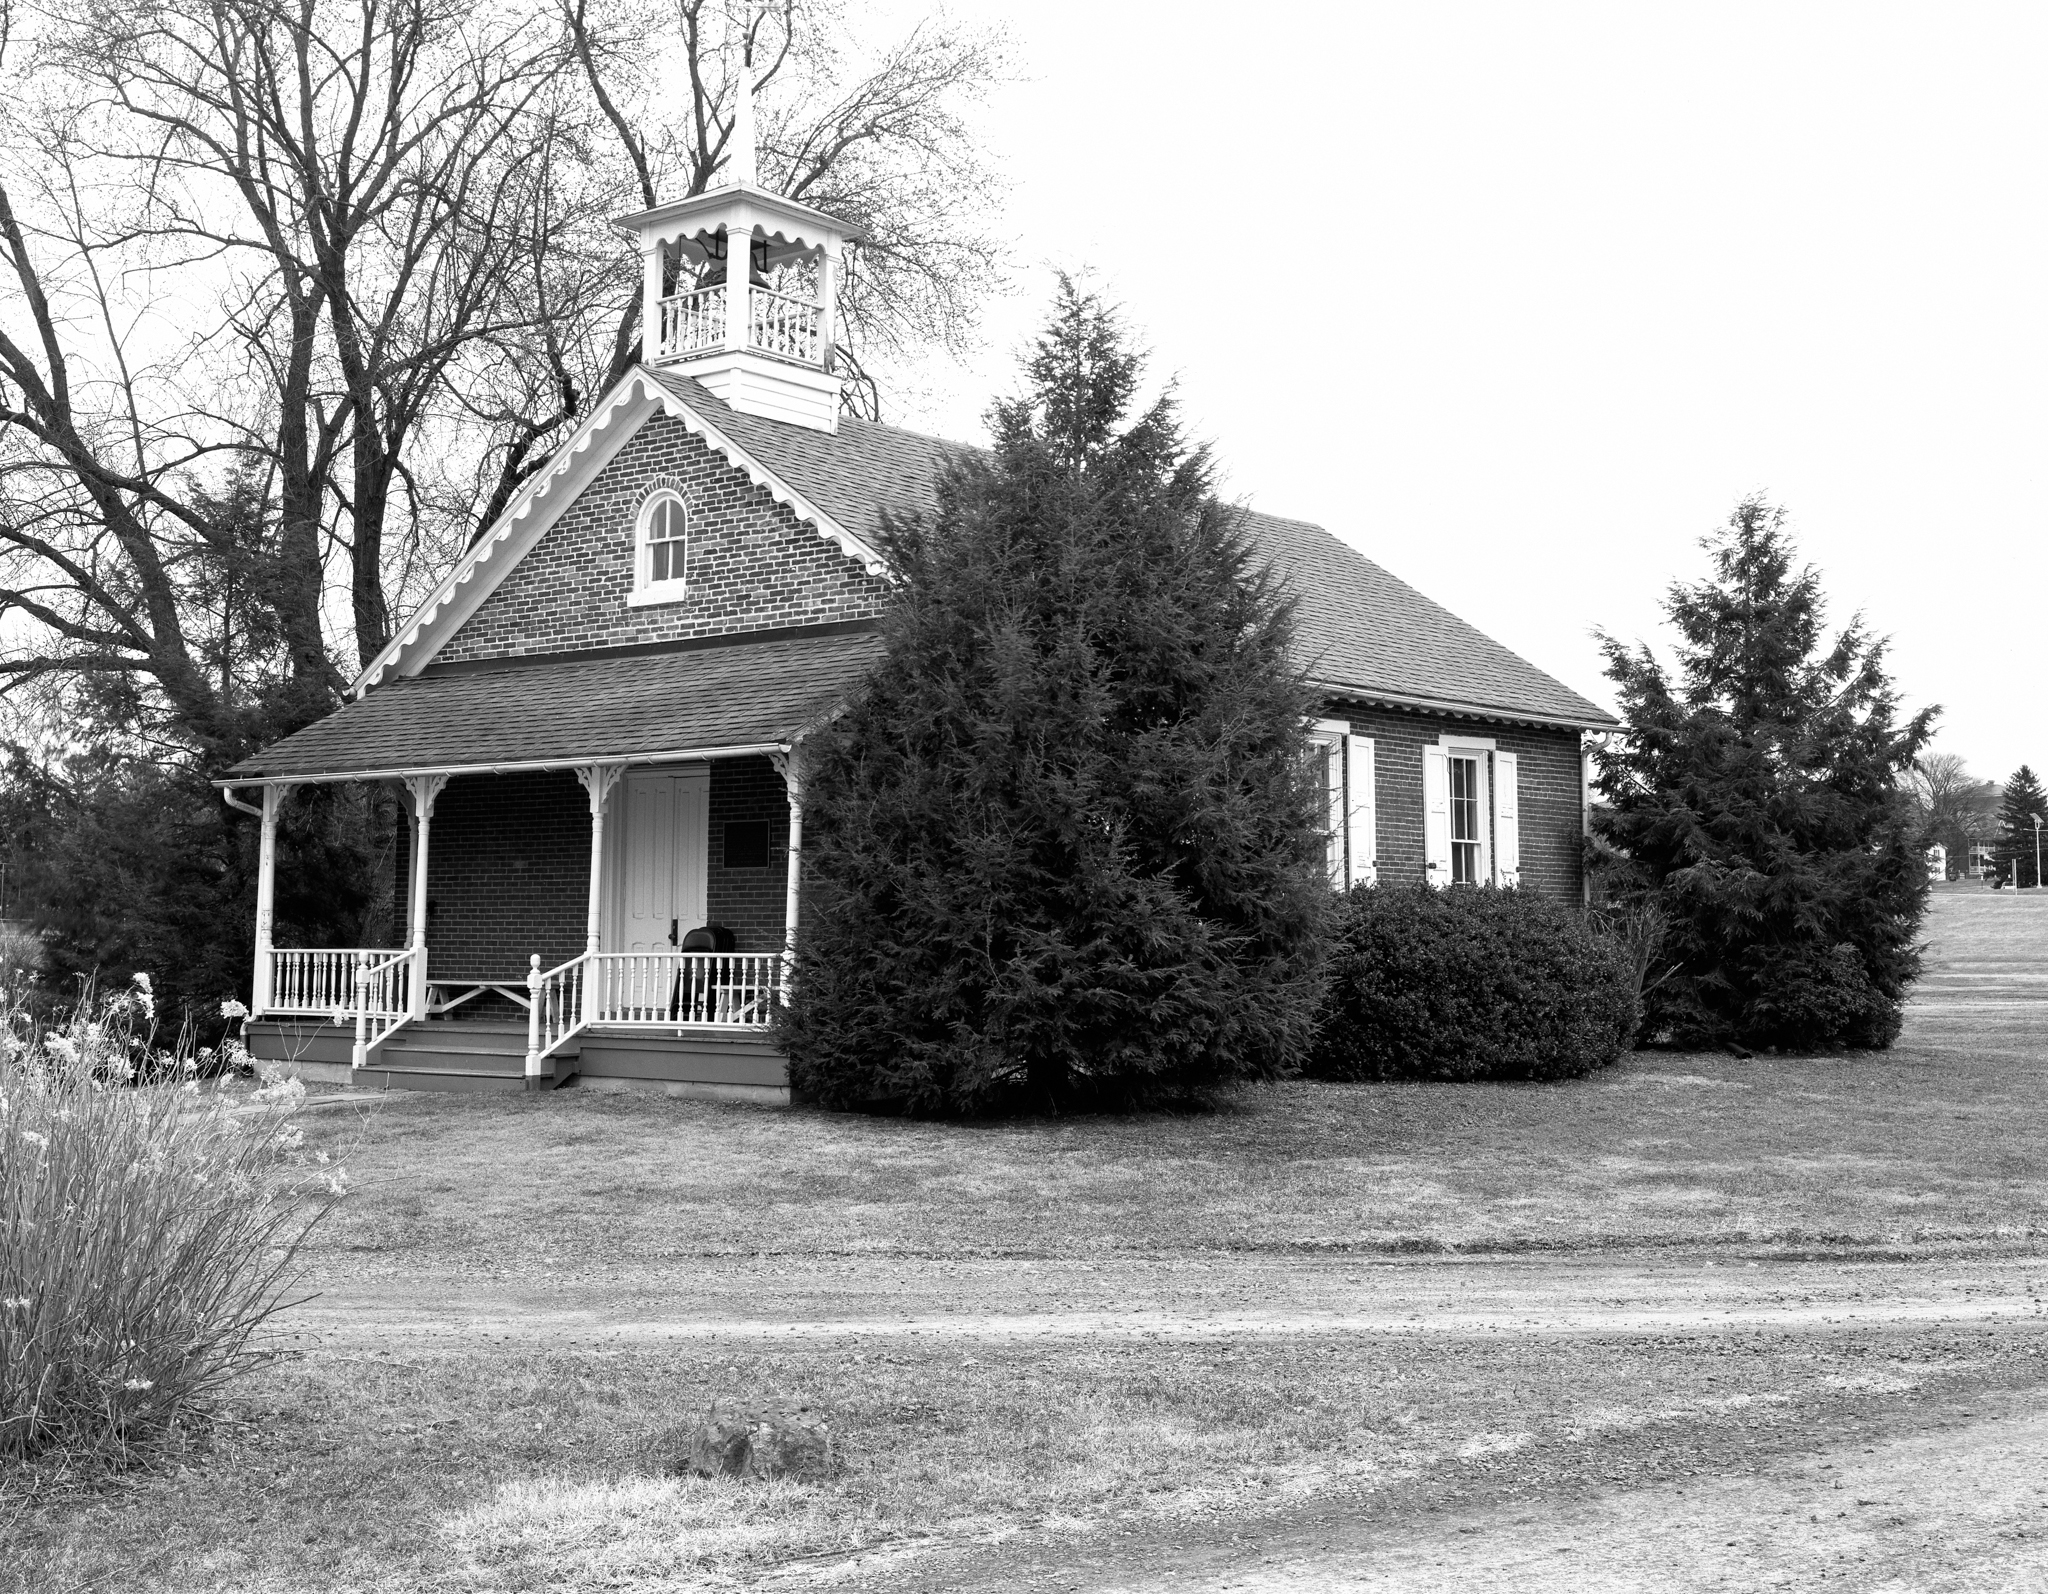 4x5_for_365_project_090_Freyberger_Schoolhouse.jpg